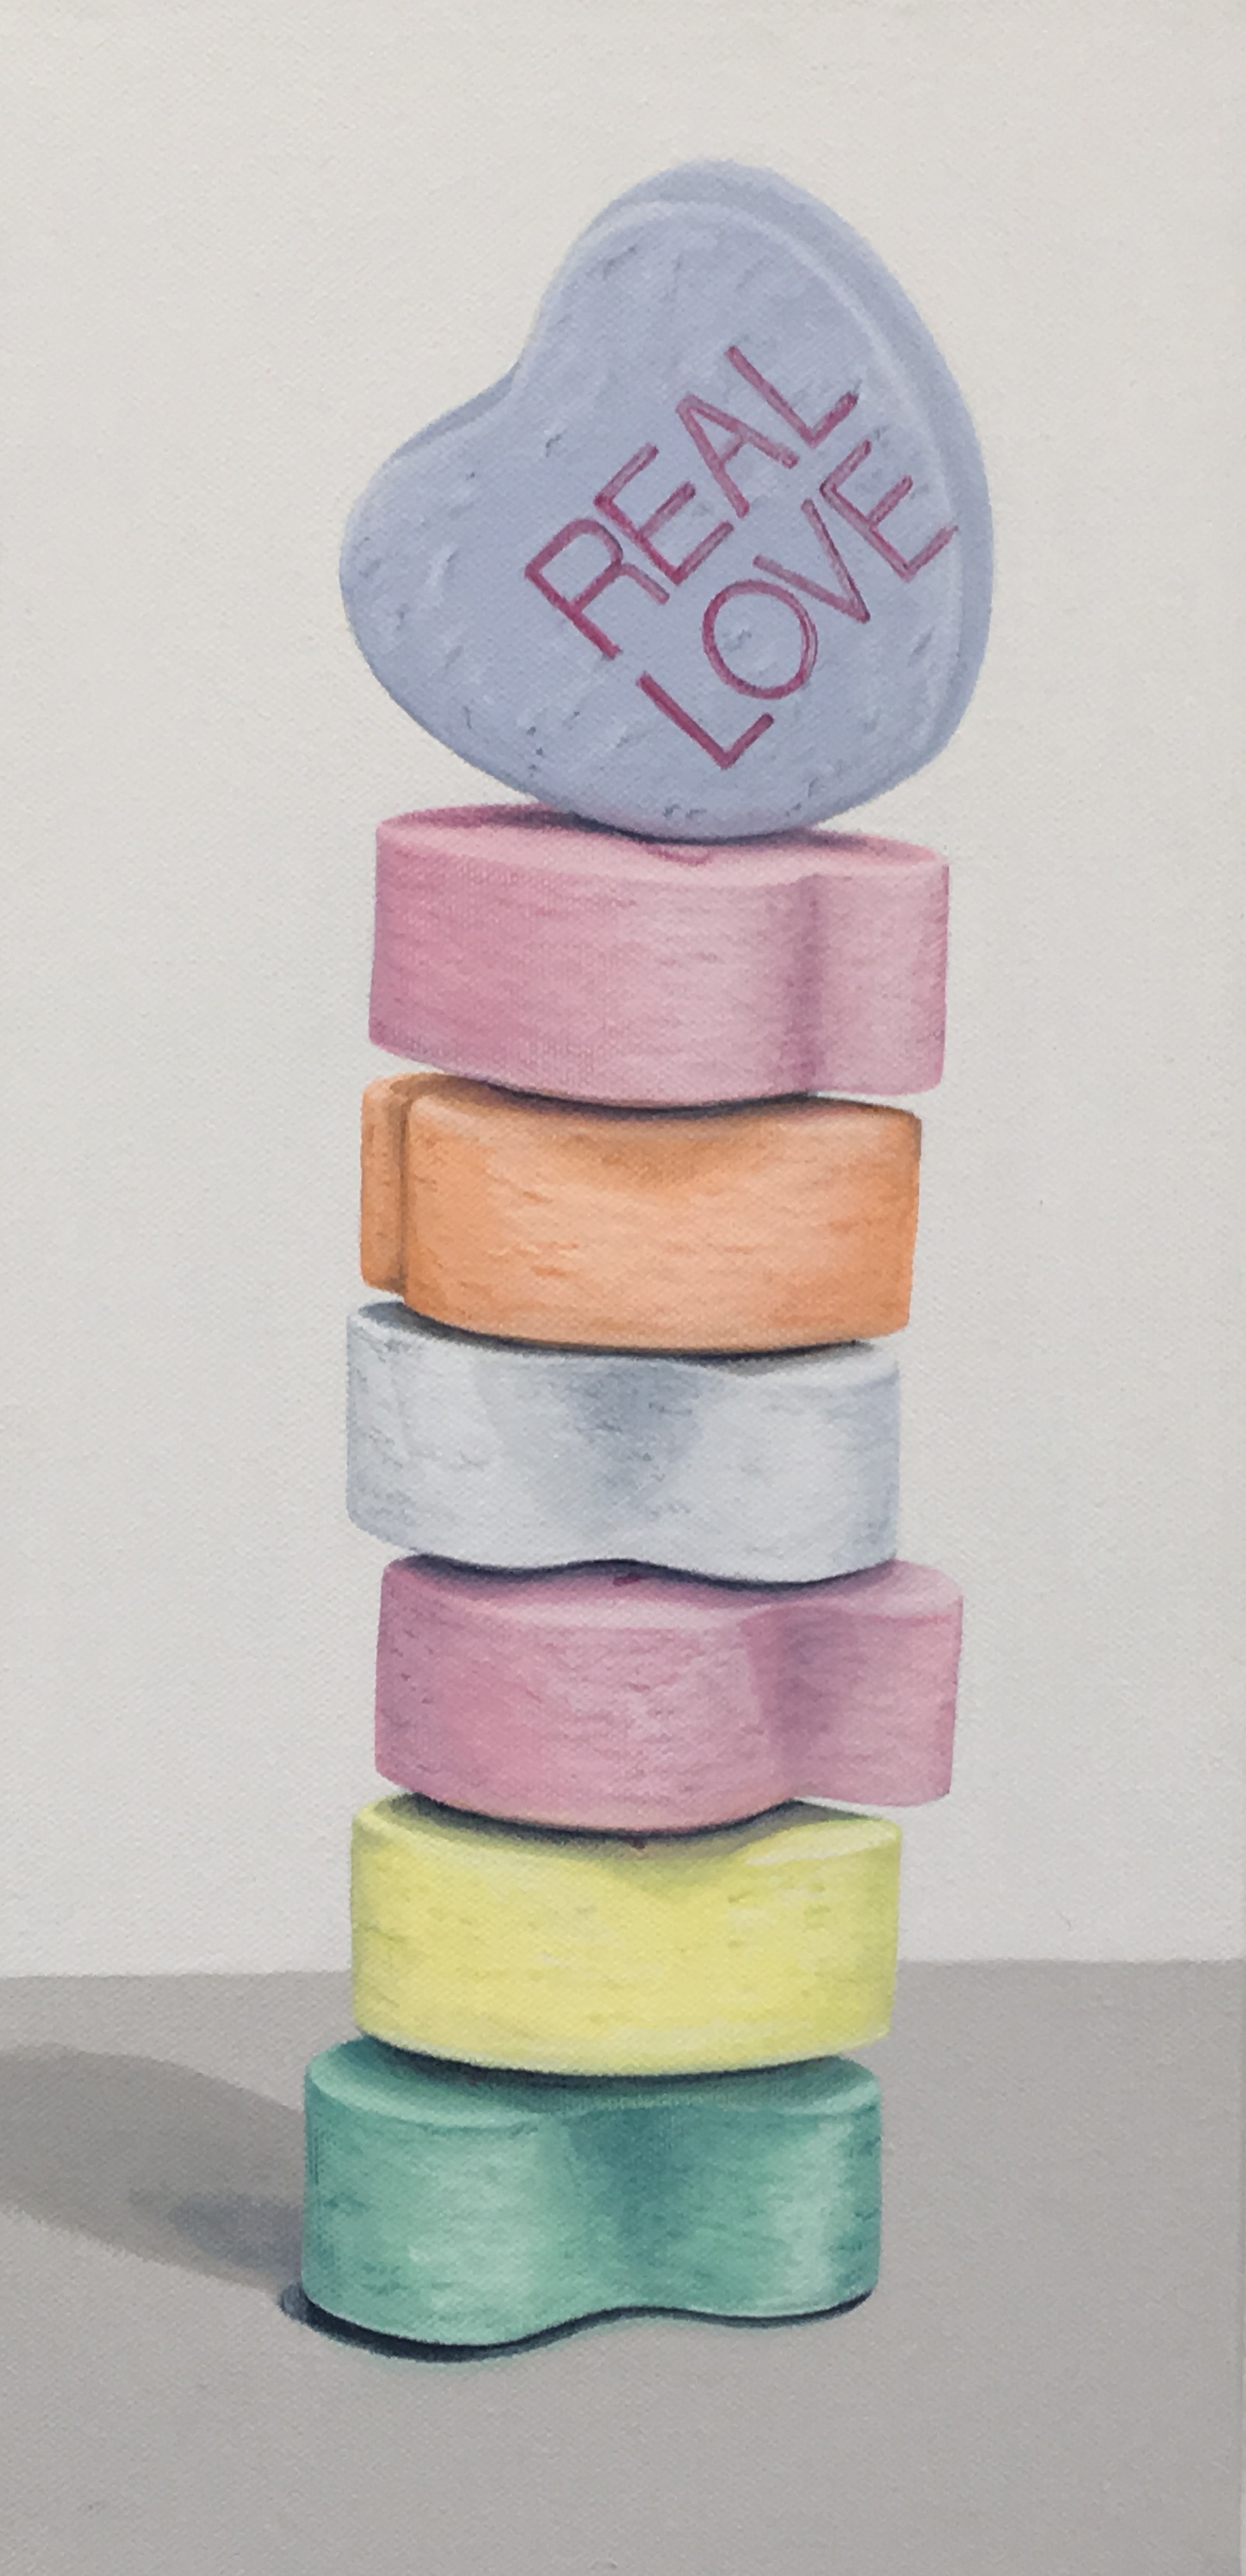 "Totem: Converation Hearts  This little stack of candy hearts are the iconic Valentine sweet. Each heart has pink printing dispenses tiny bits of advice, often off center, faint or blurry, and occasionally nonsensical.     Simon Breitbard Fine Arts    http://sbfinearts.com ,  415-951-1969   8"" x 16"" gallery wrapped canvas  $400.00   SOLD"